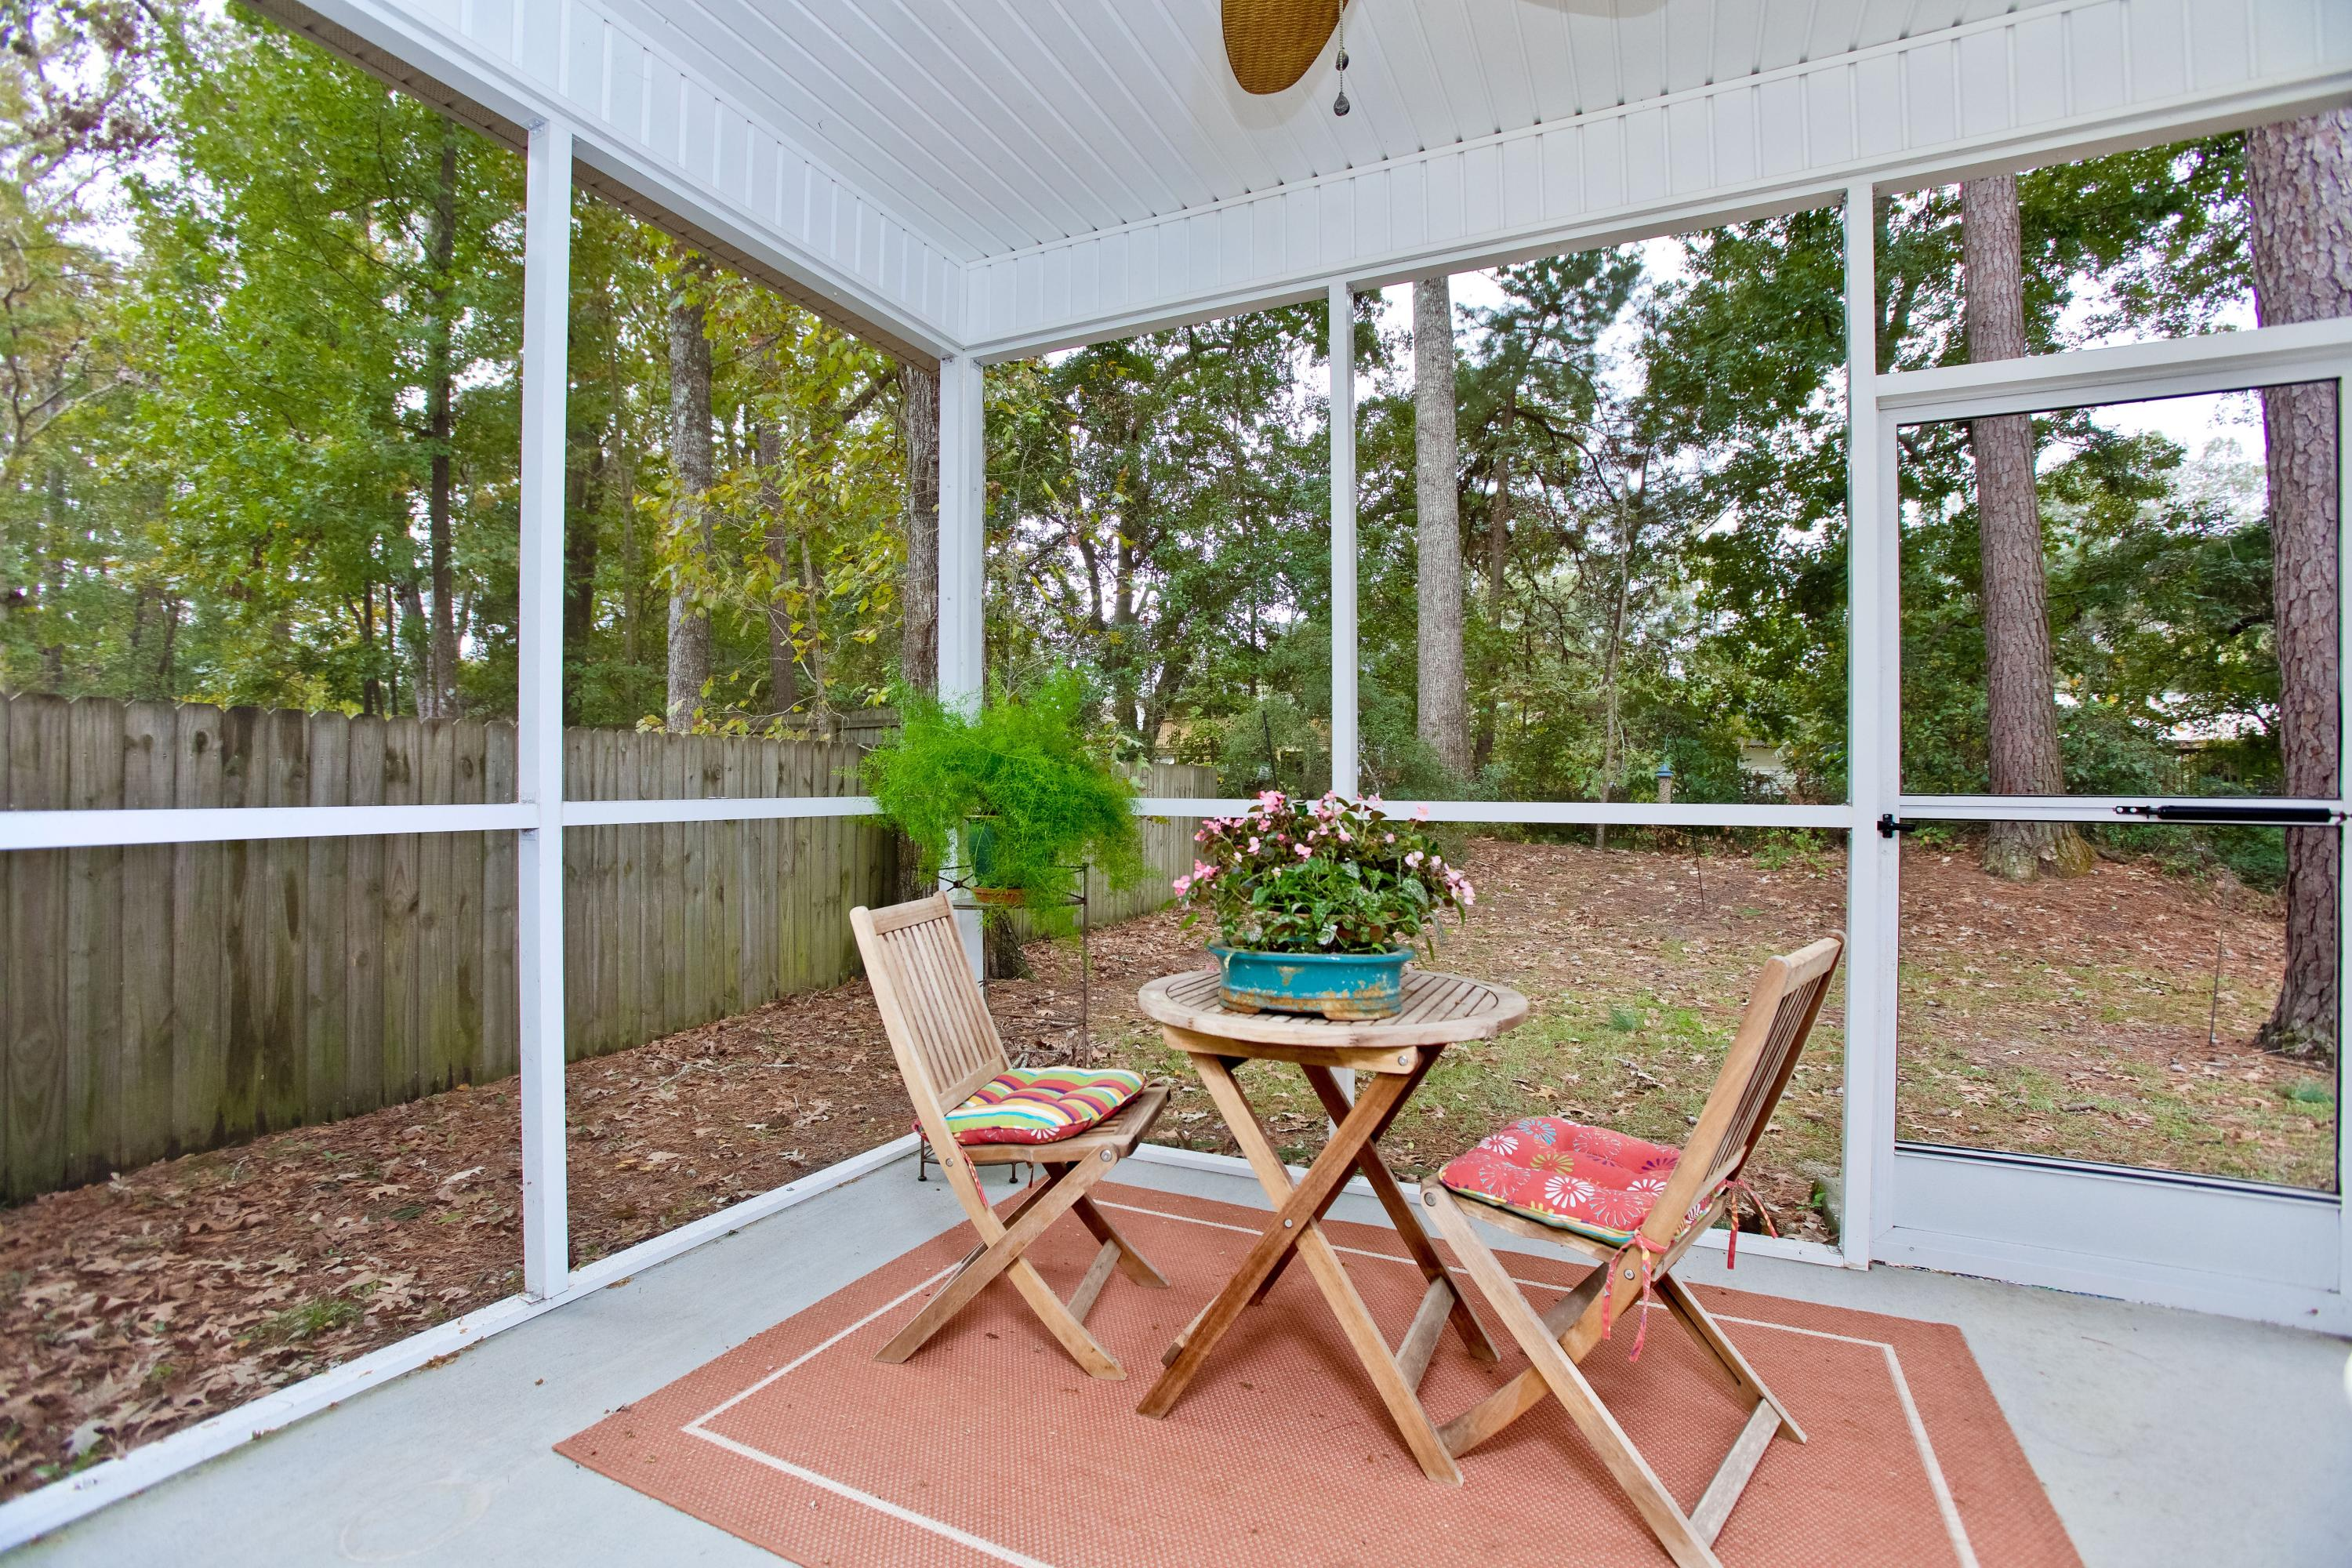 Appian Way Homes For Sale - 8473 Athens, North Charleston, SC - 0